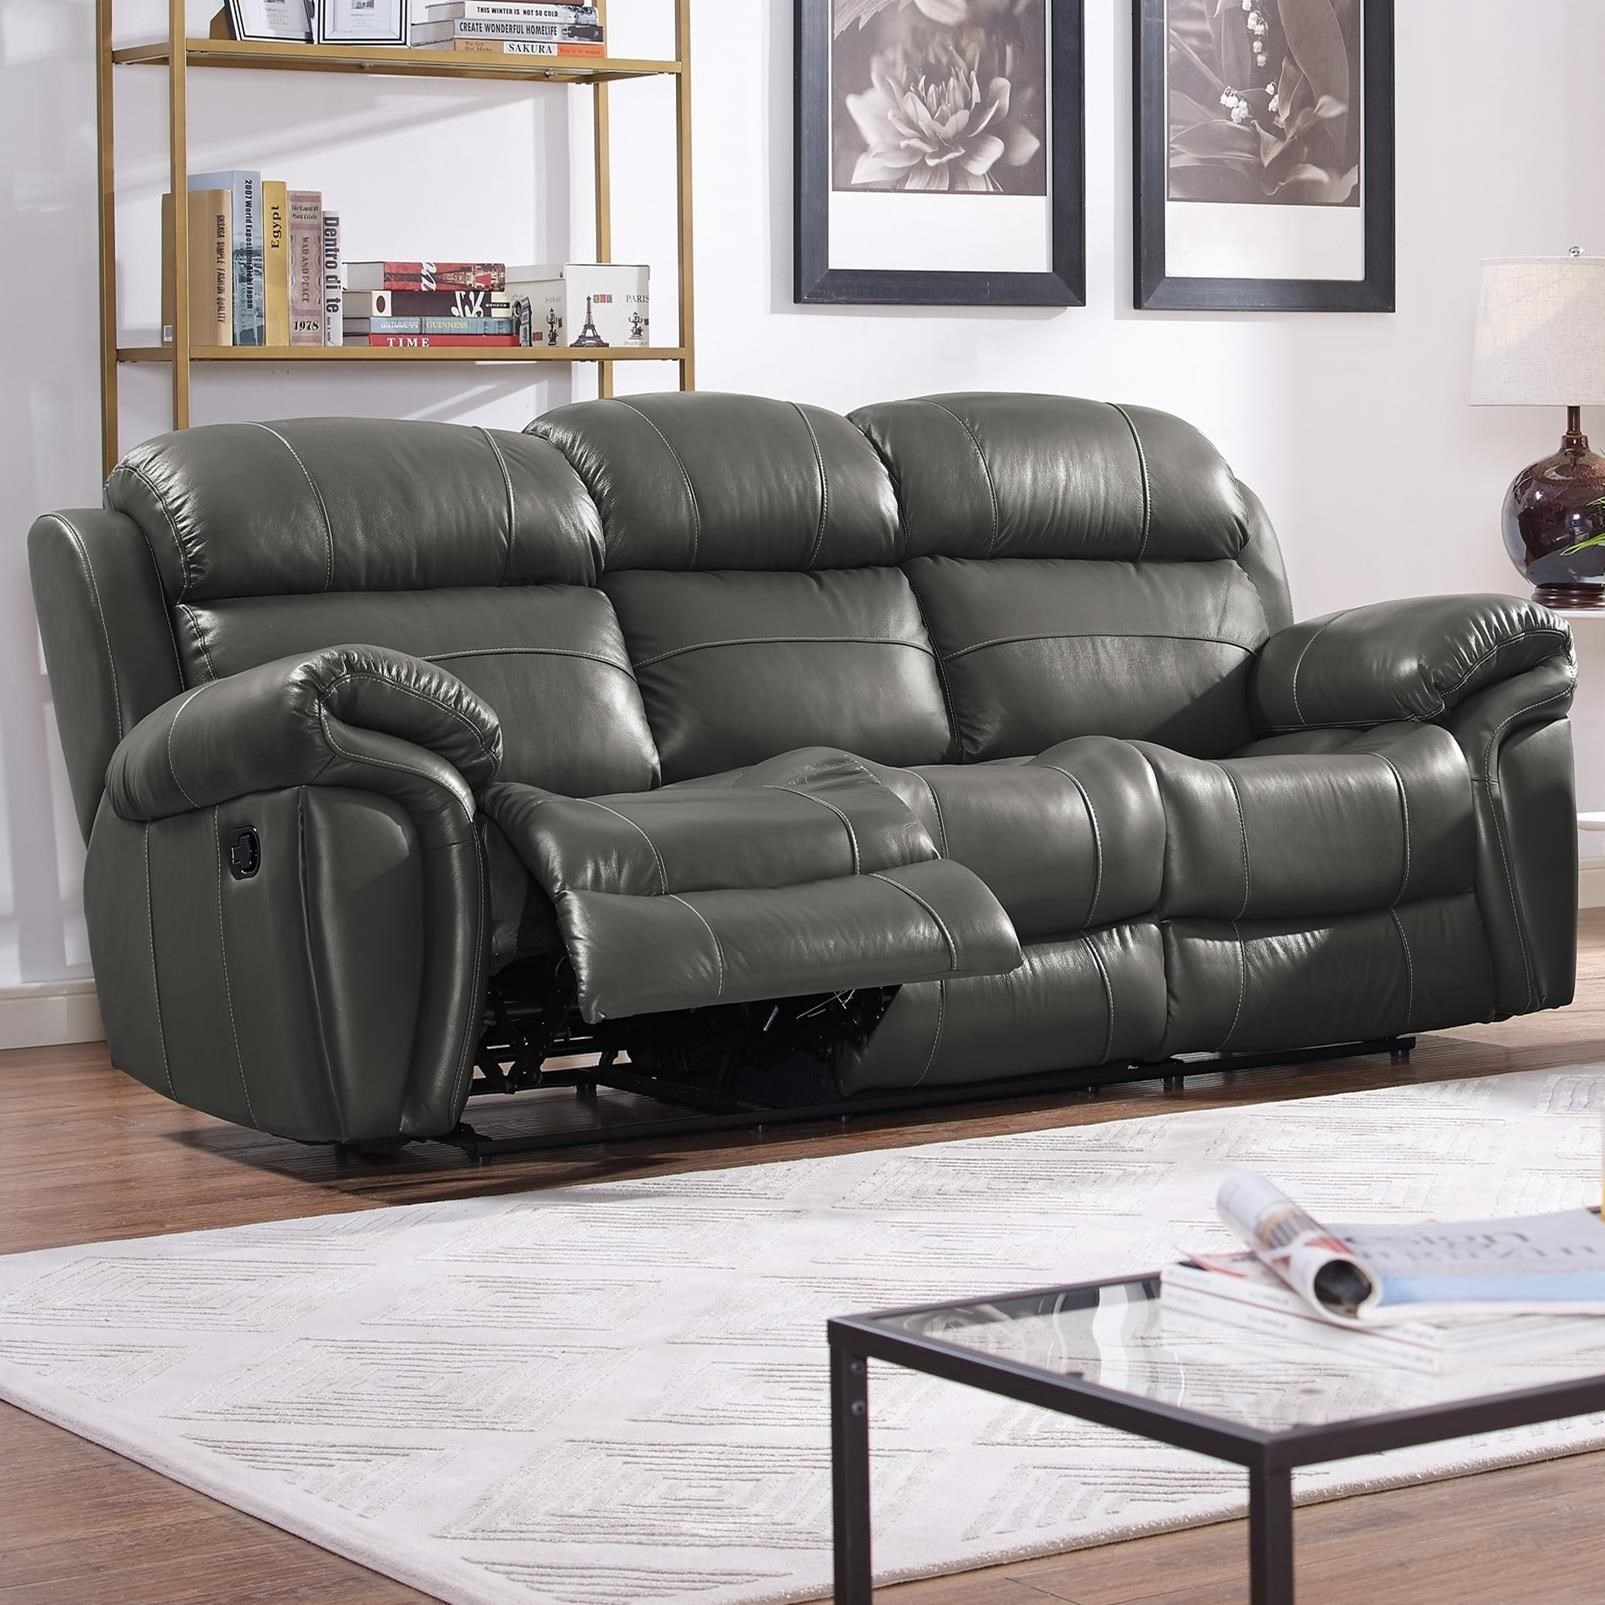 Charmant New Classic Paloma Casual Power Reclining Sofa With Drop Down Tray